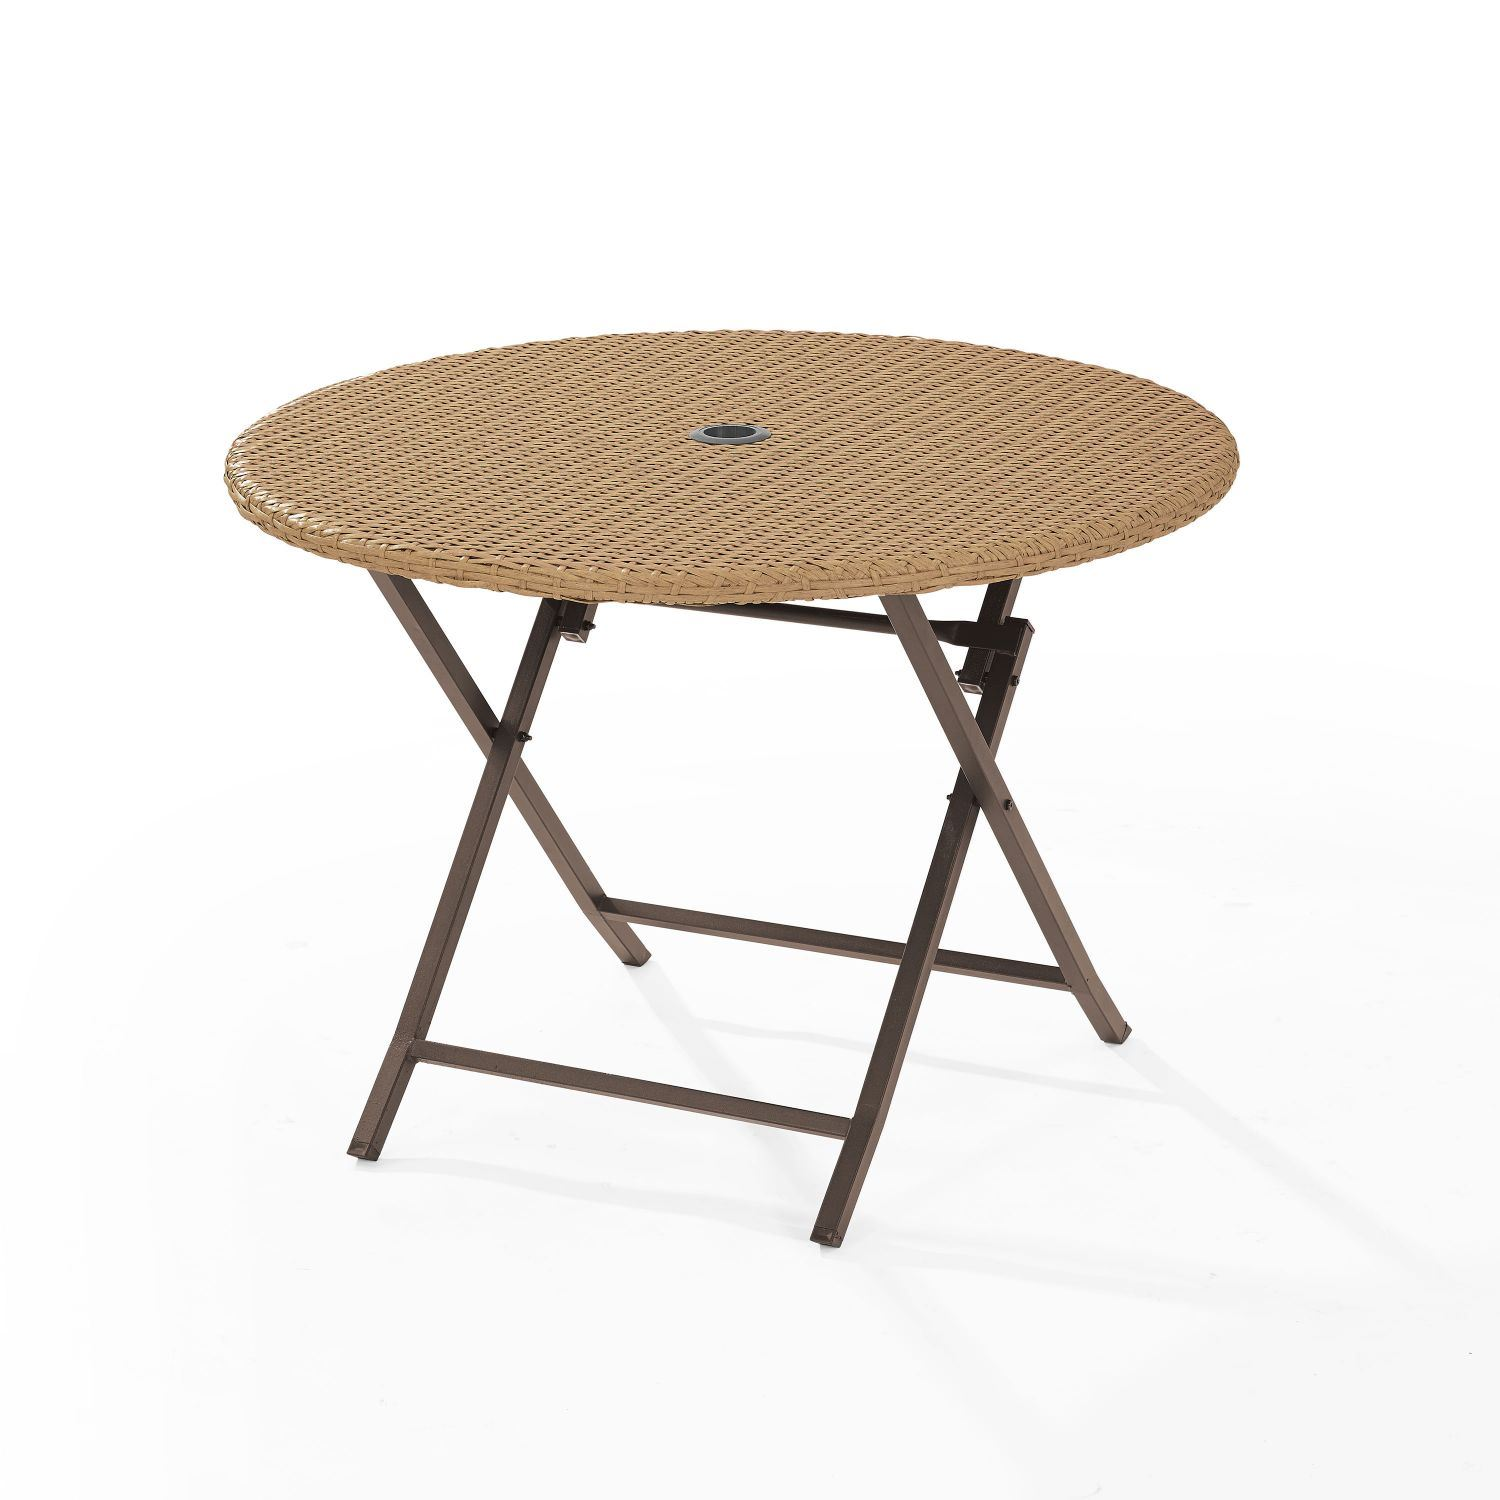 Palm Harbor Outdoor Wicker Folding Table Co7205 Lb